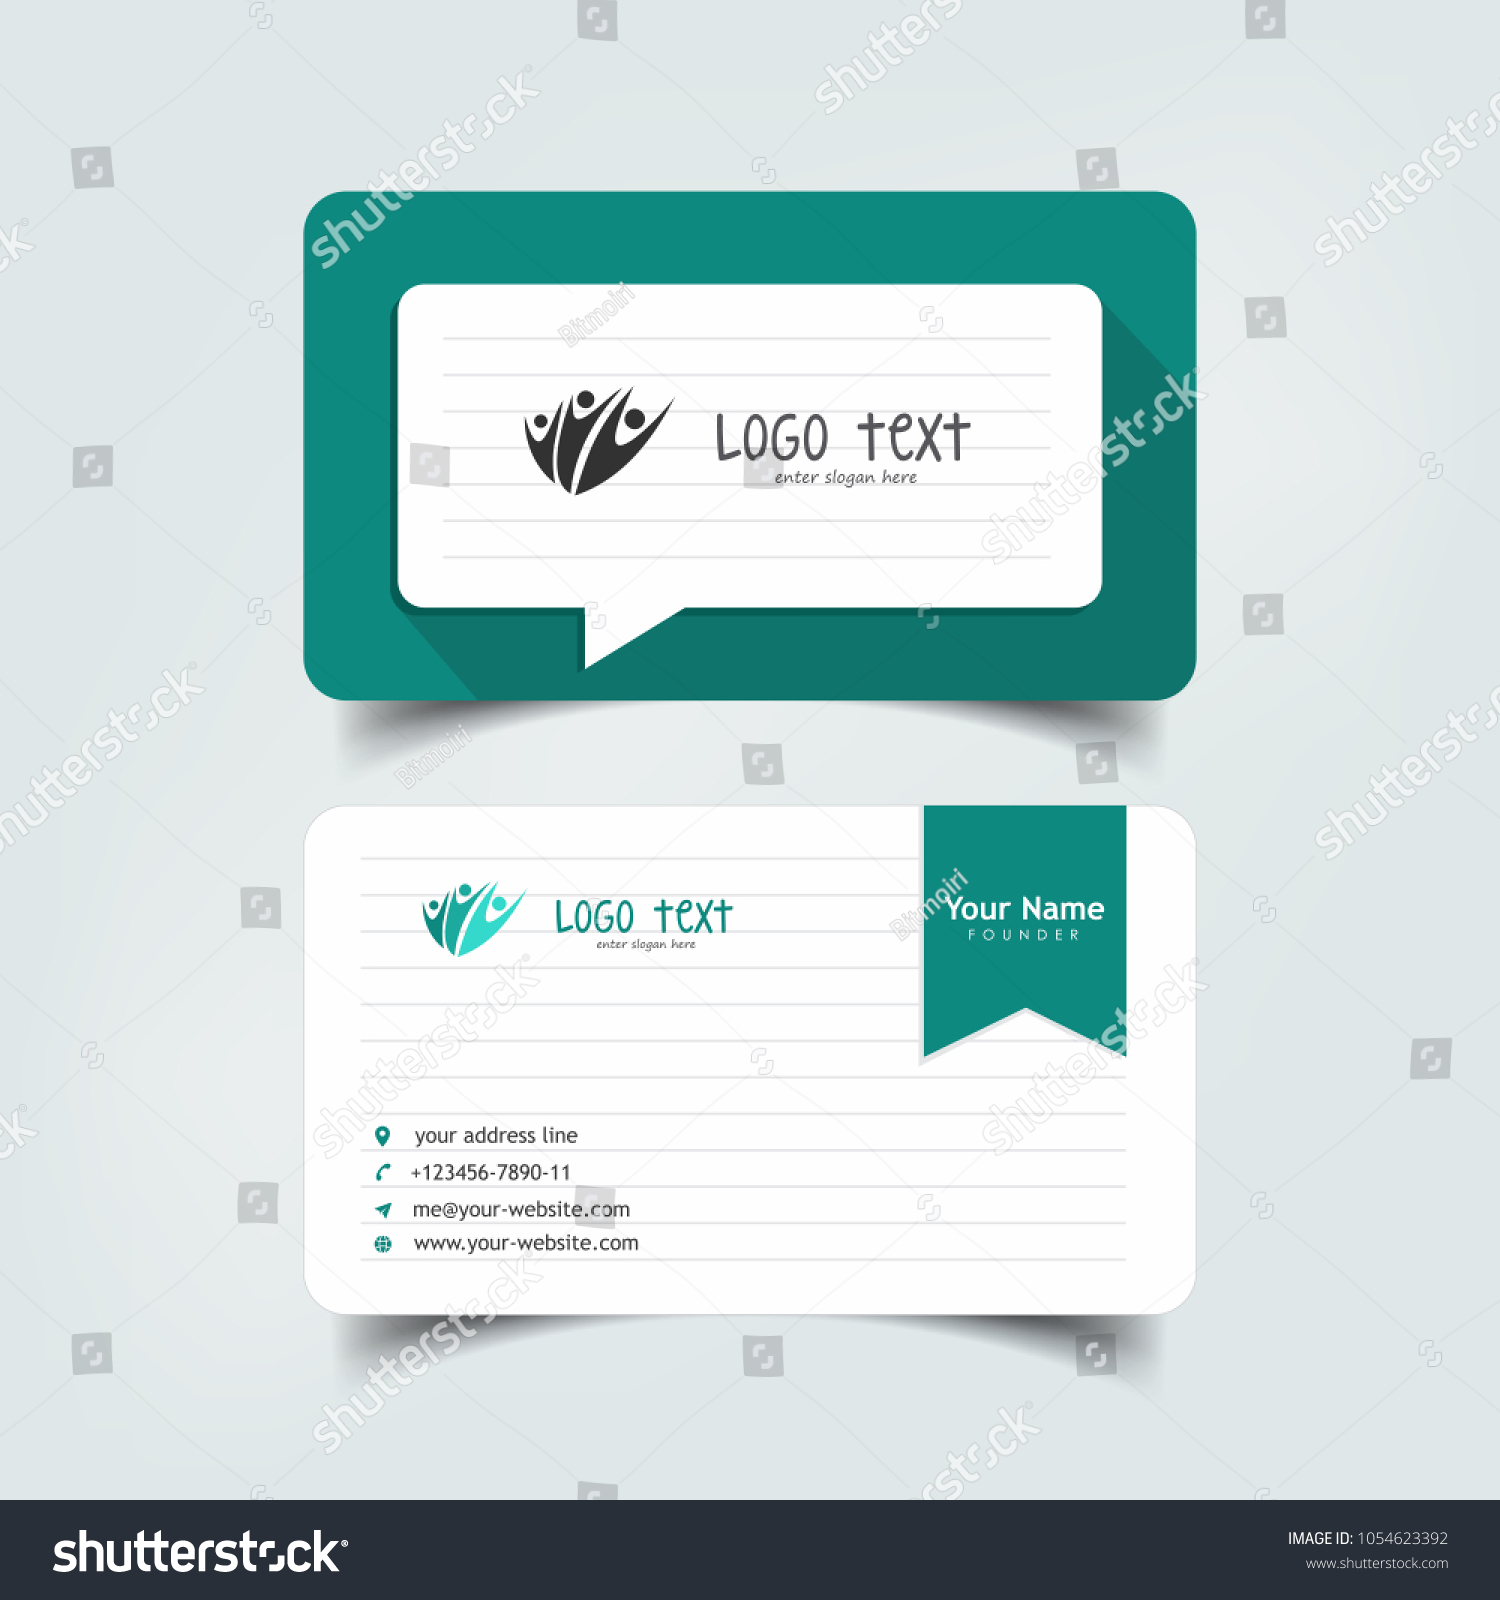 Simple elegant business card templates paper stock vector royalty simple elegant business card templates with paper buzz styles identity card templates friedricerecipe Choice Image